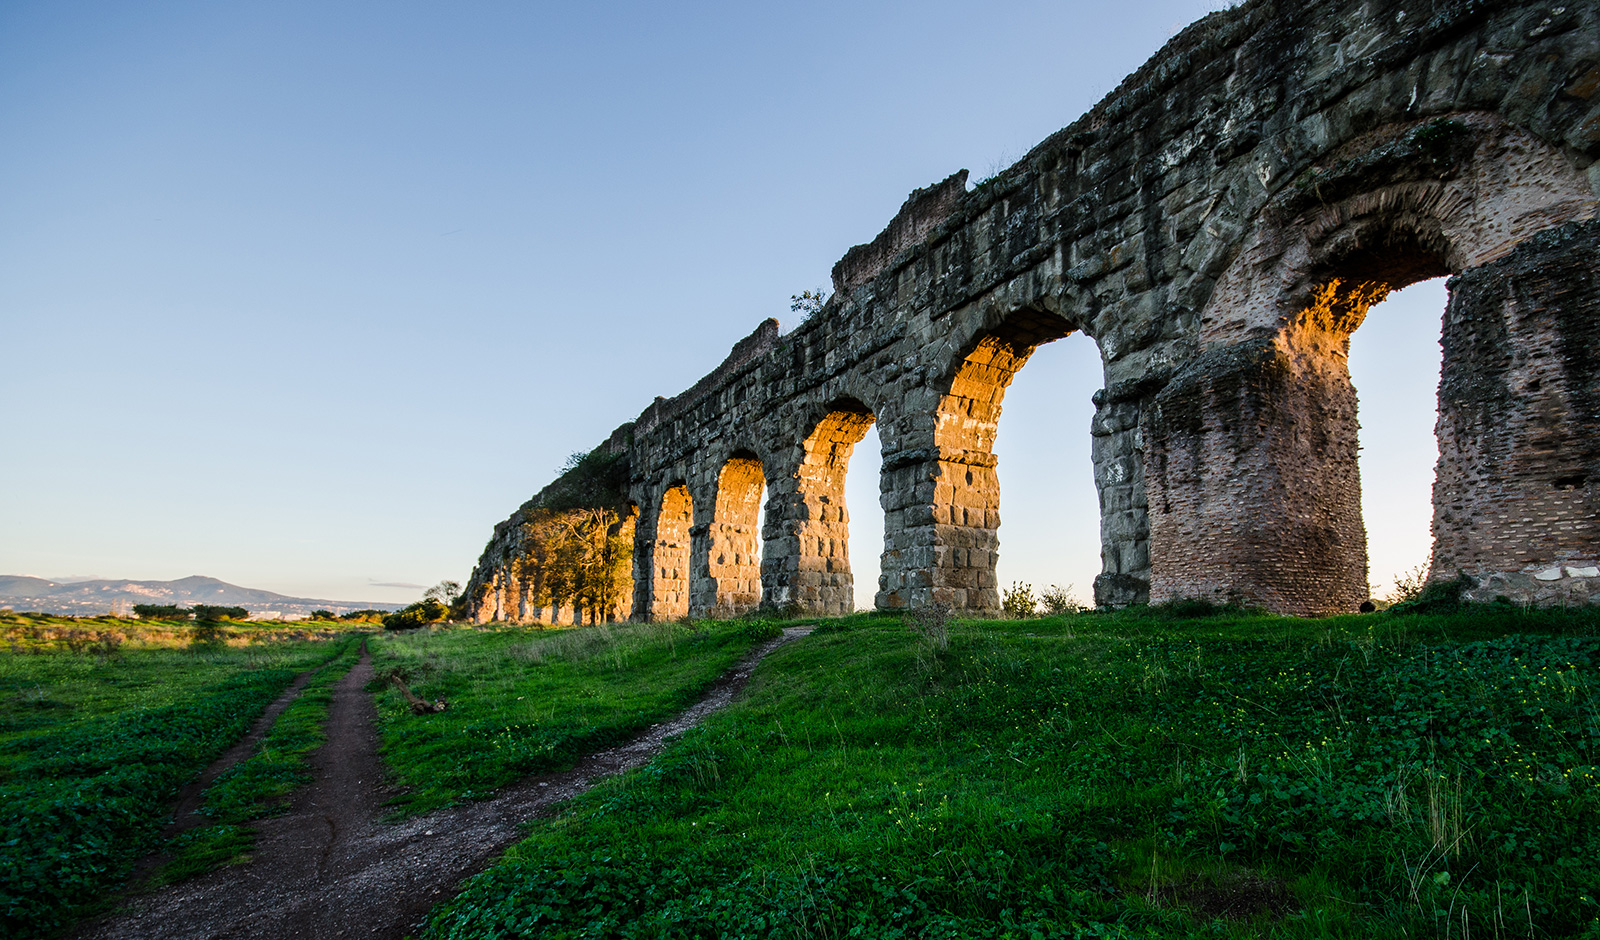 Rome buildings: the Aquaducts